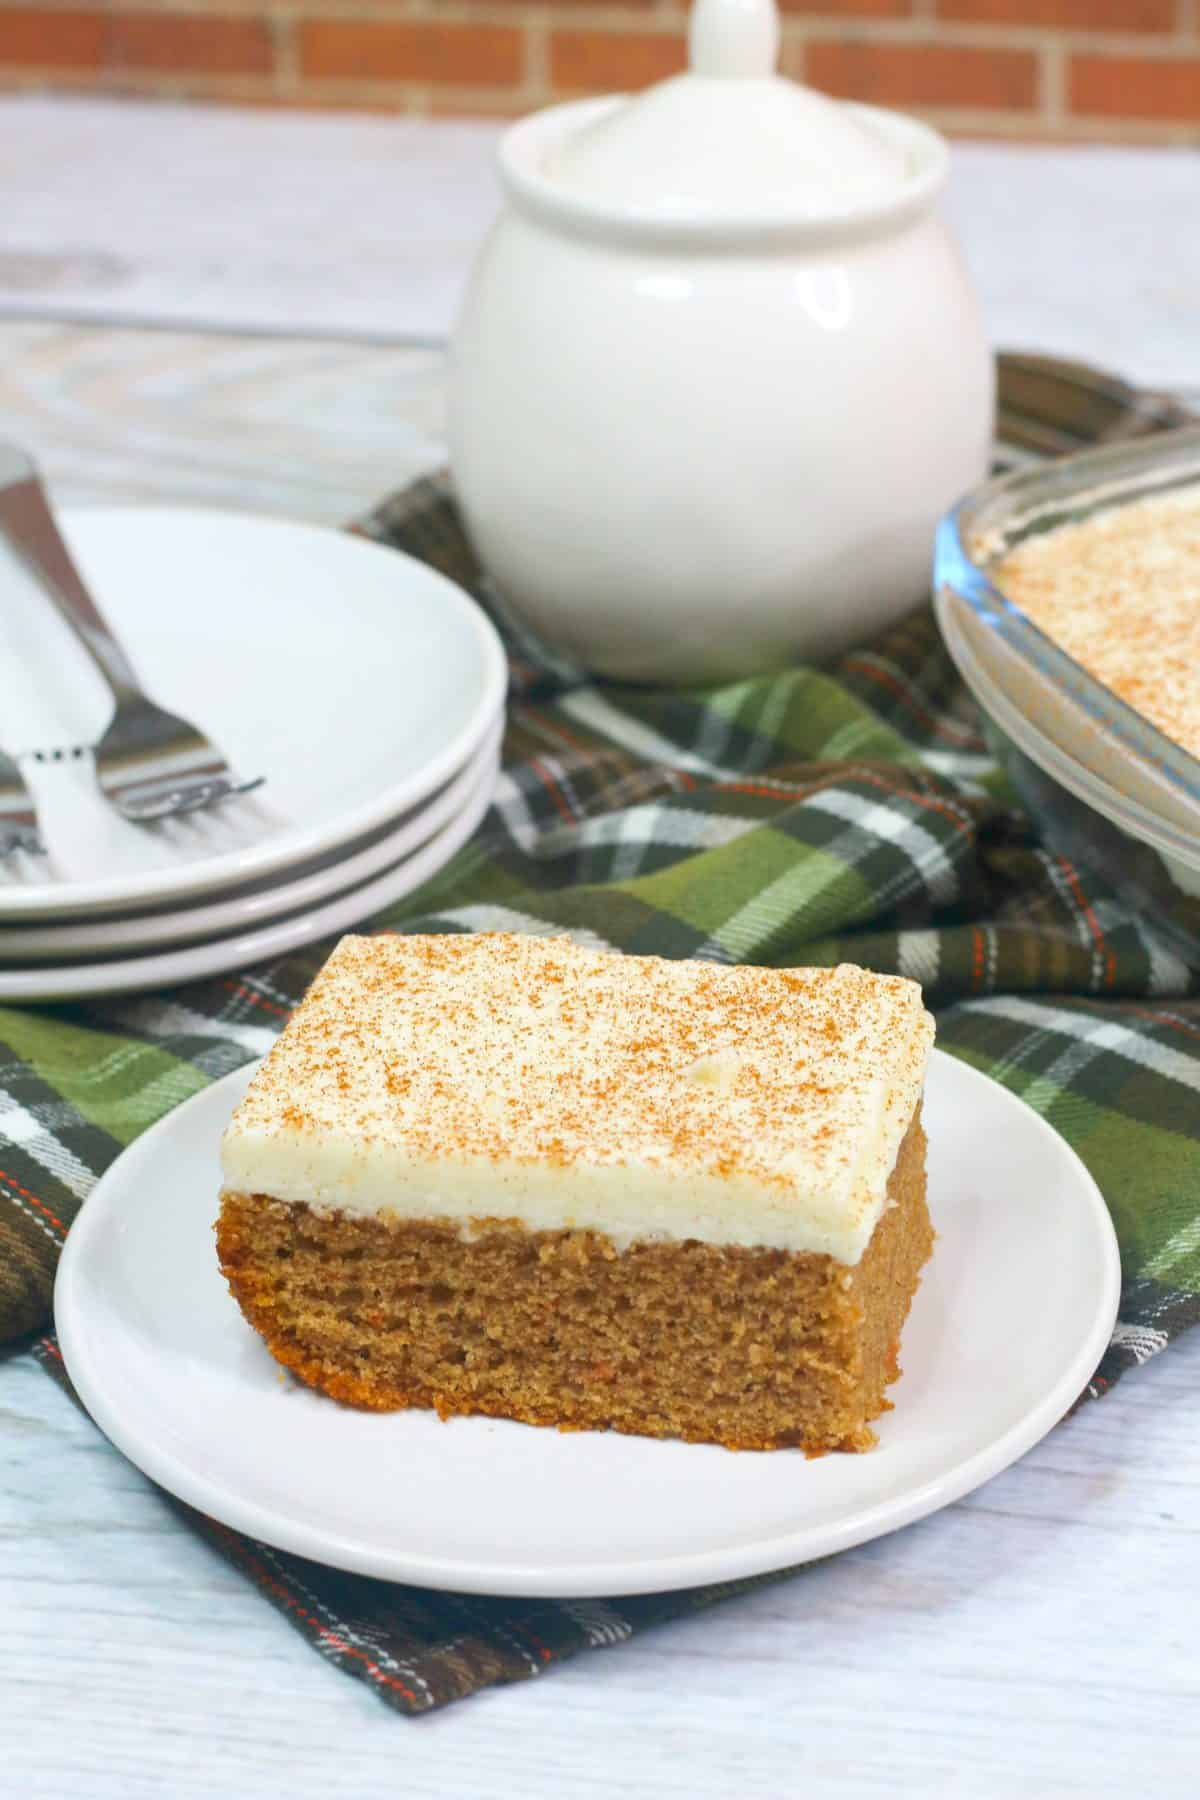 Easter Dessert, carrot cake with cream cheese frosting